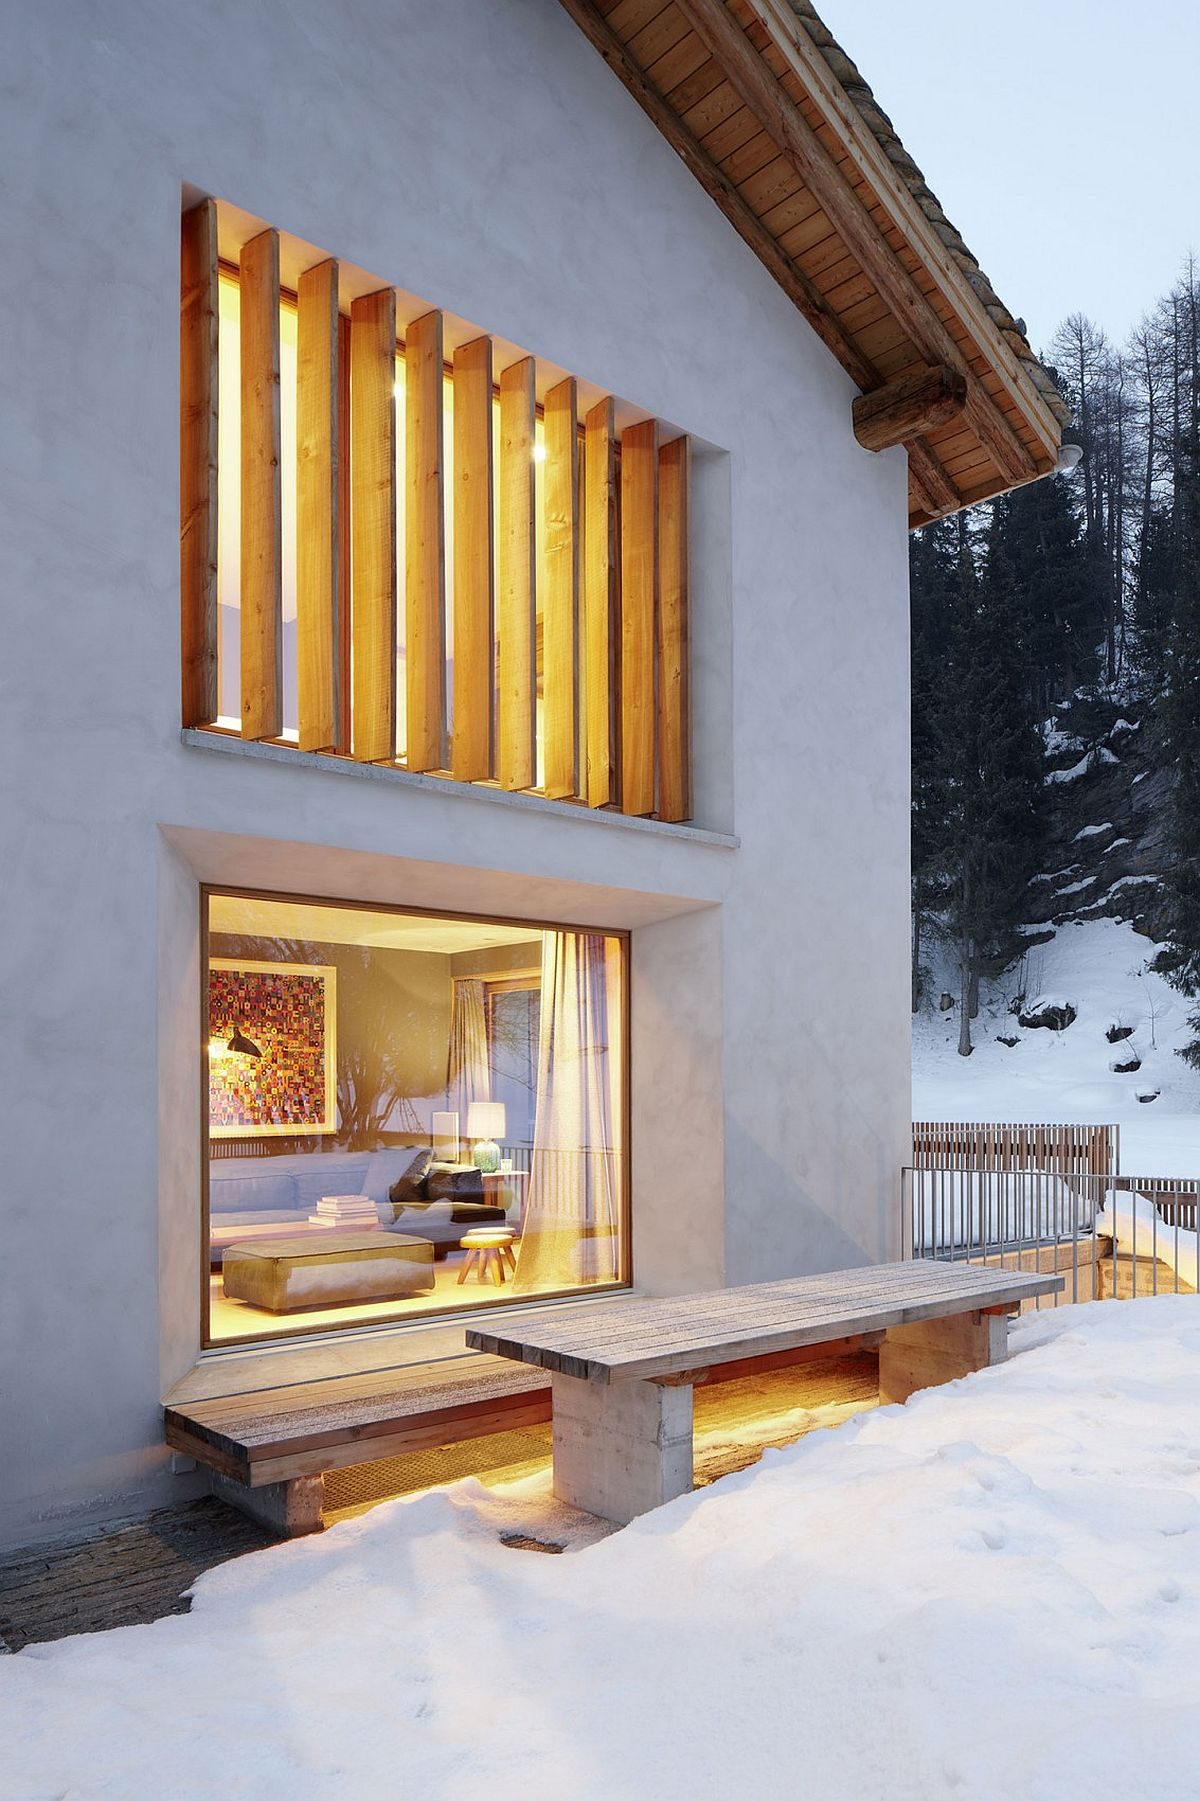 Wonderful use of window to bring in natural light and to offer lovely views of the snow-covered slopes outside